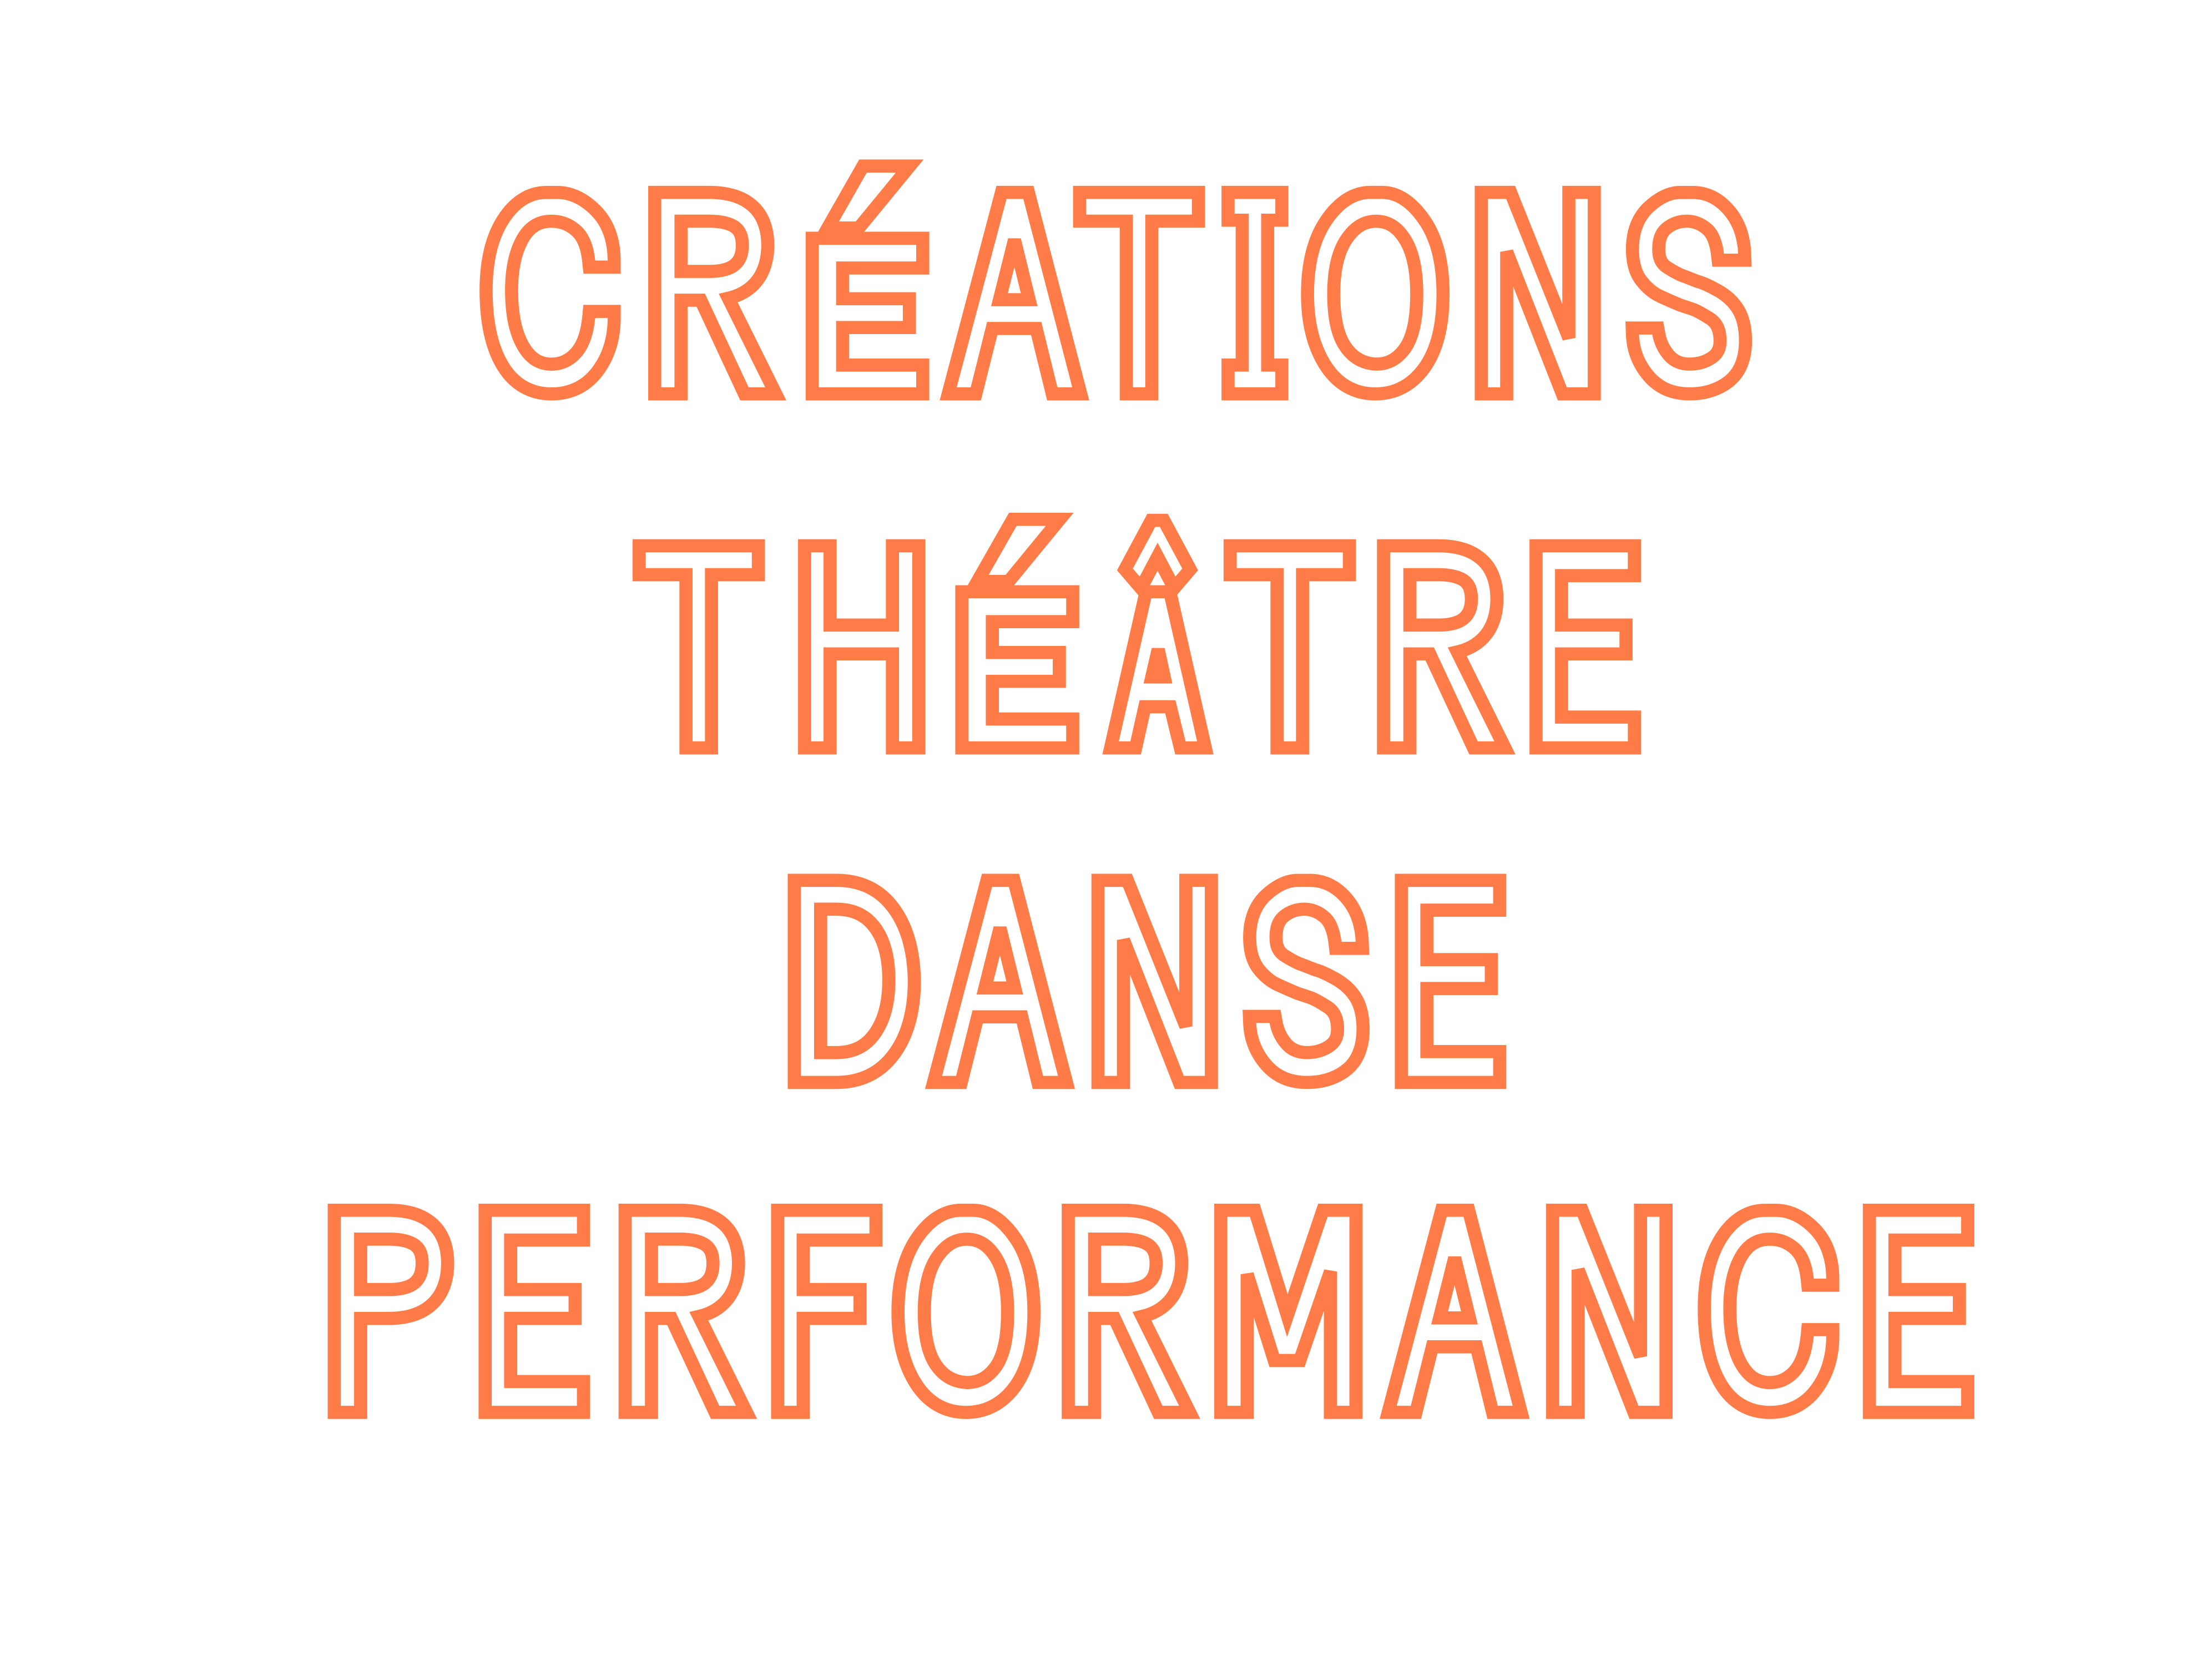 content/images/img-19-20/balsa-creation3-orange.png